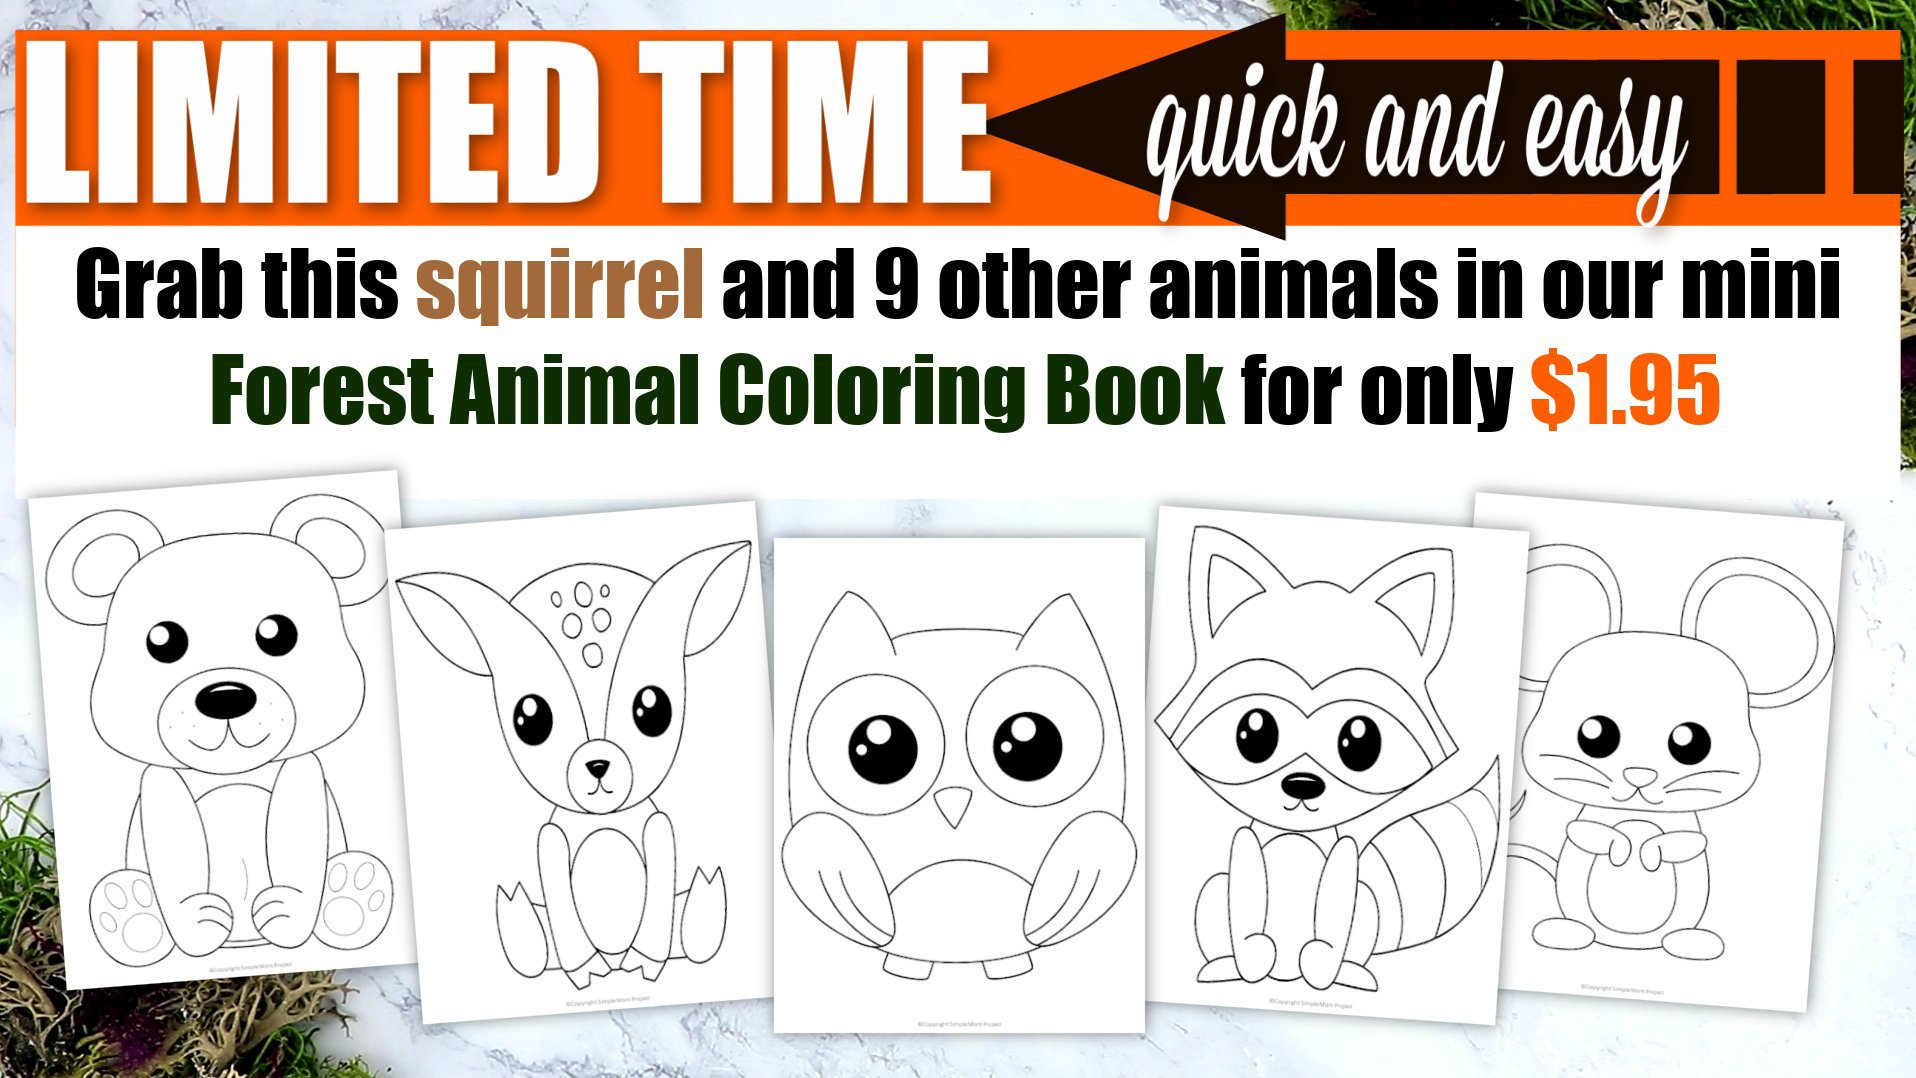 Printable Woodland Forest squirrel Coloring Page for Kids Preschoolers Toddlers and kindergartners